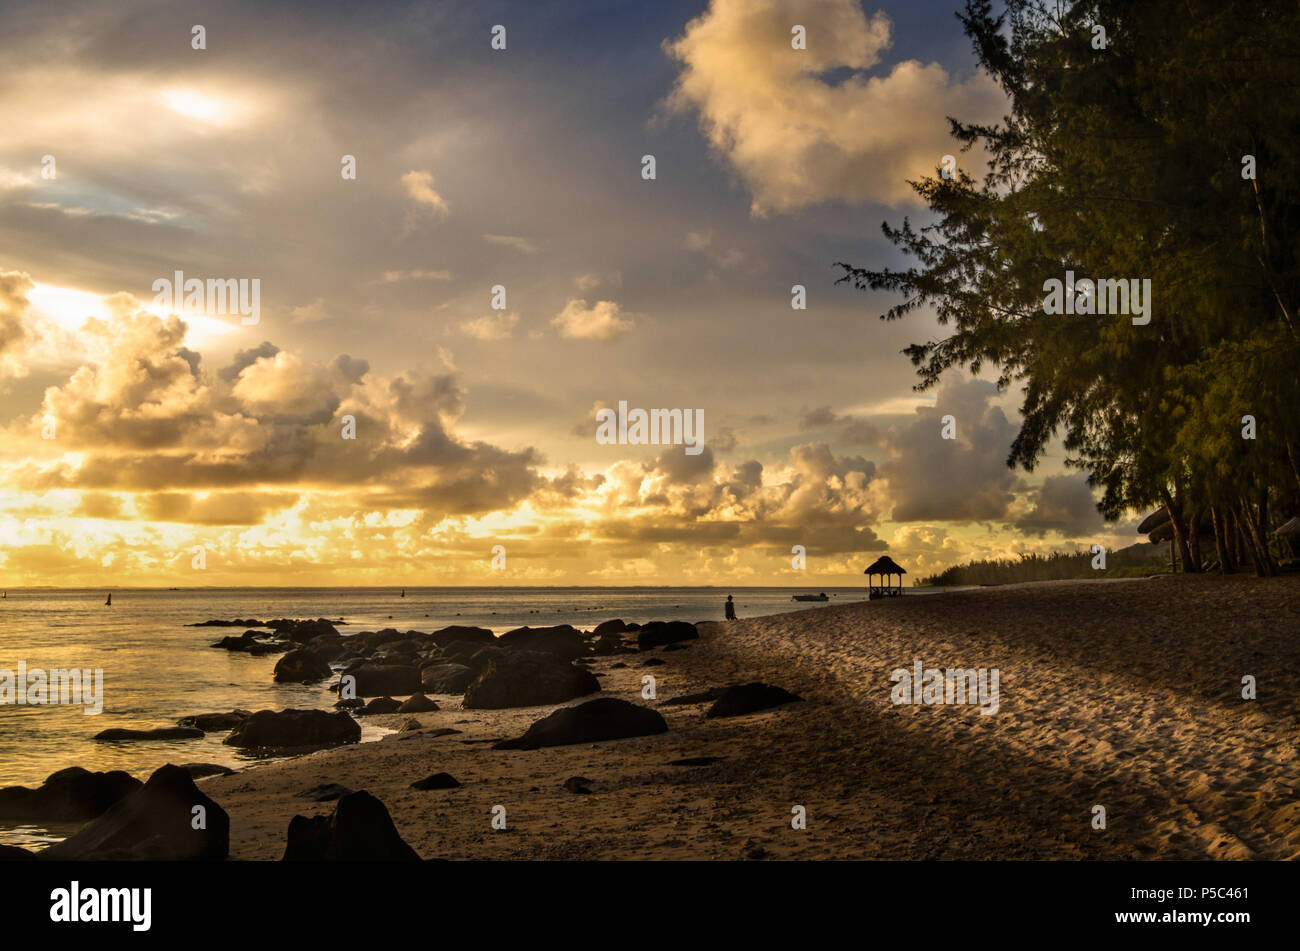 A golden sunset on the beach on Bel Ombre in Southern Mauritius,Africa, creating a tranquil and meditative environment with last sunshine on the beach - Stock Image